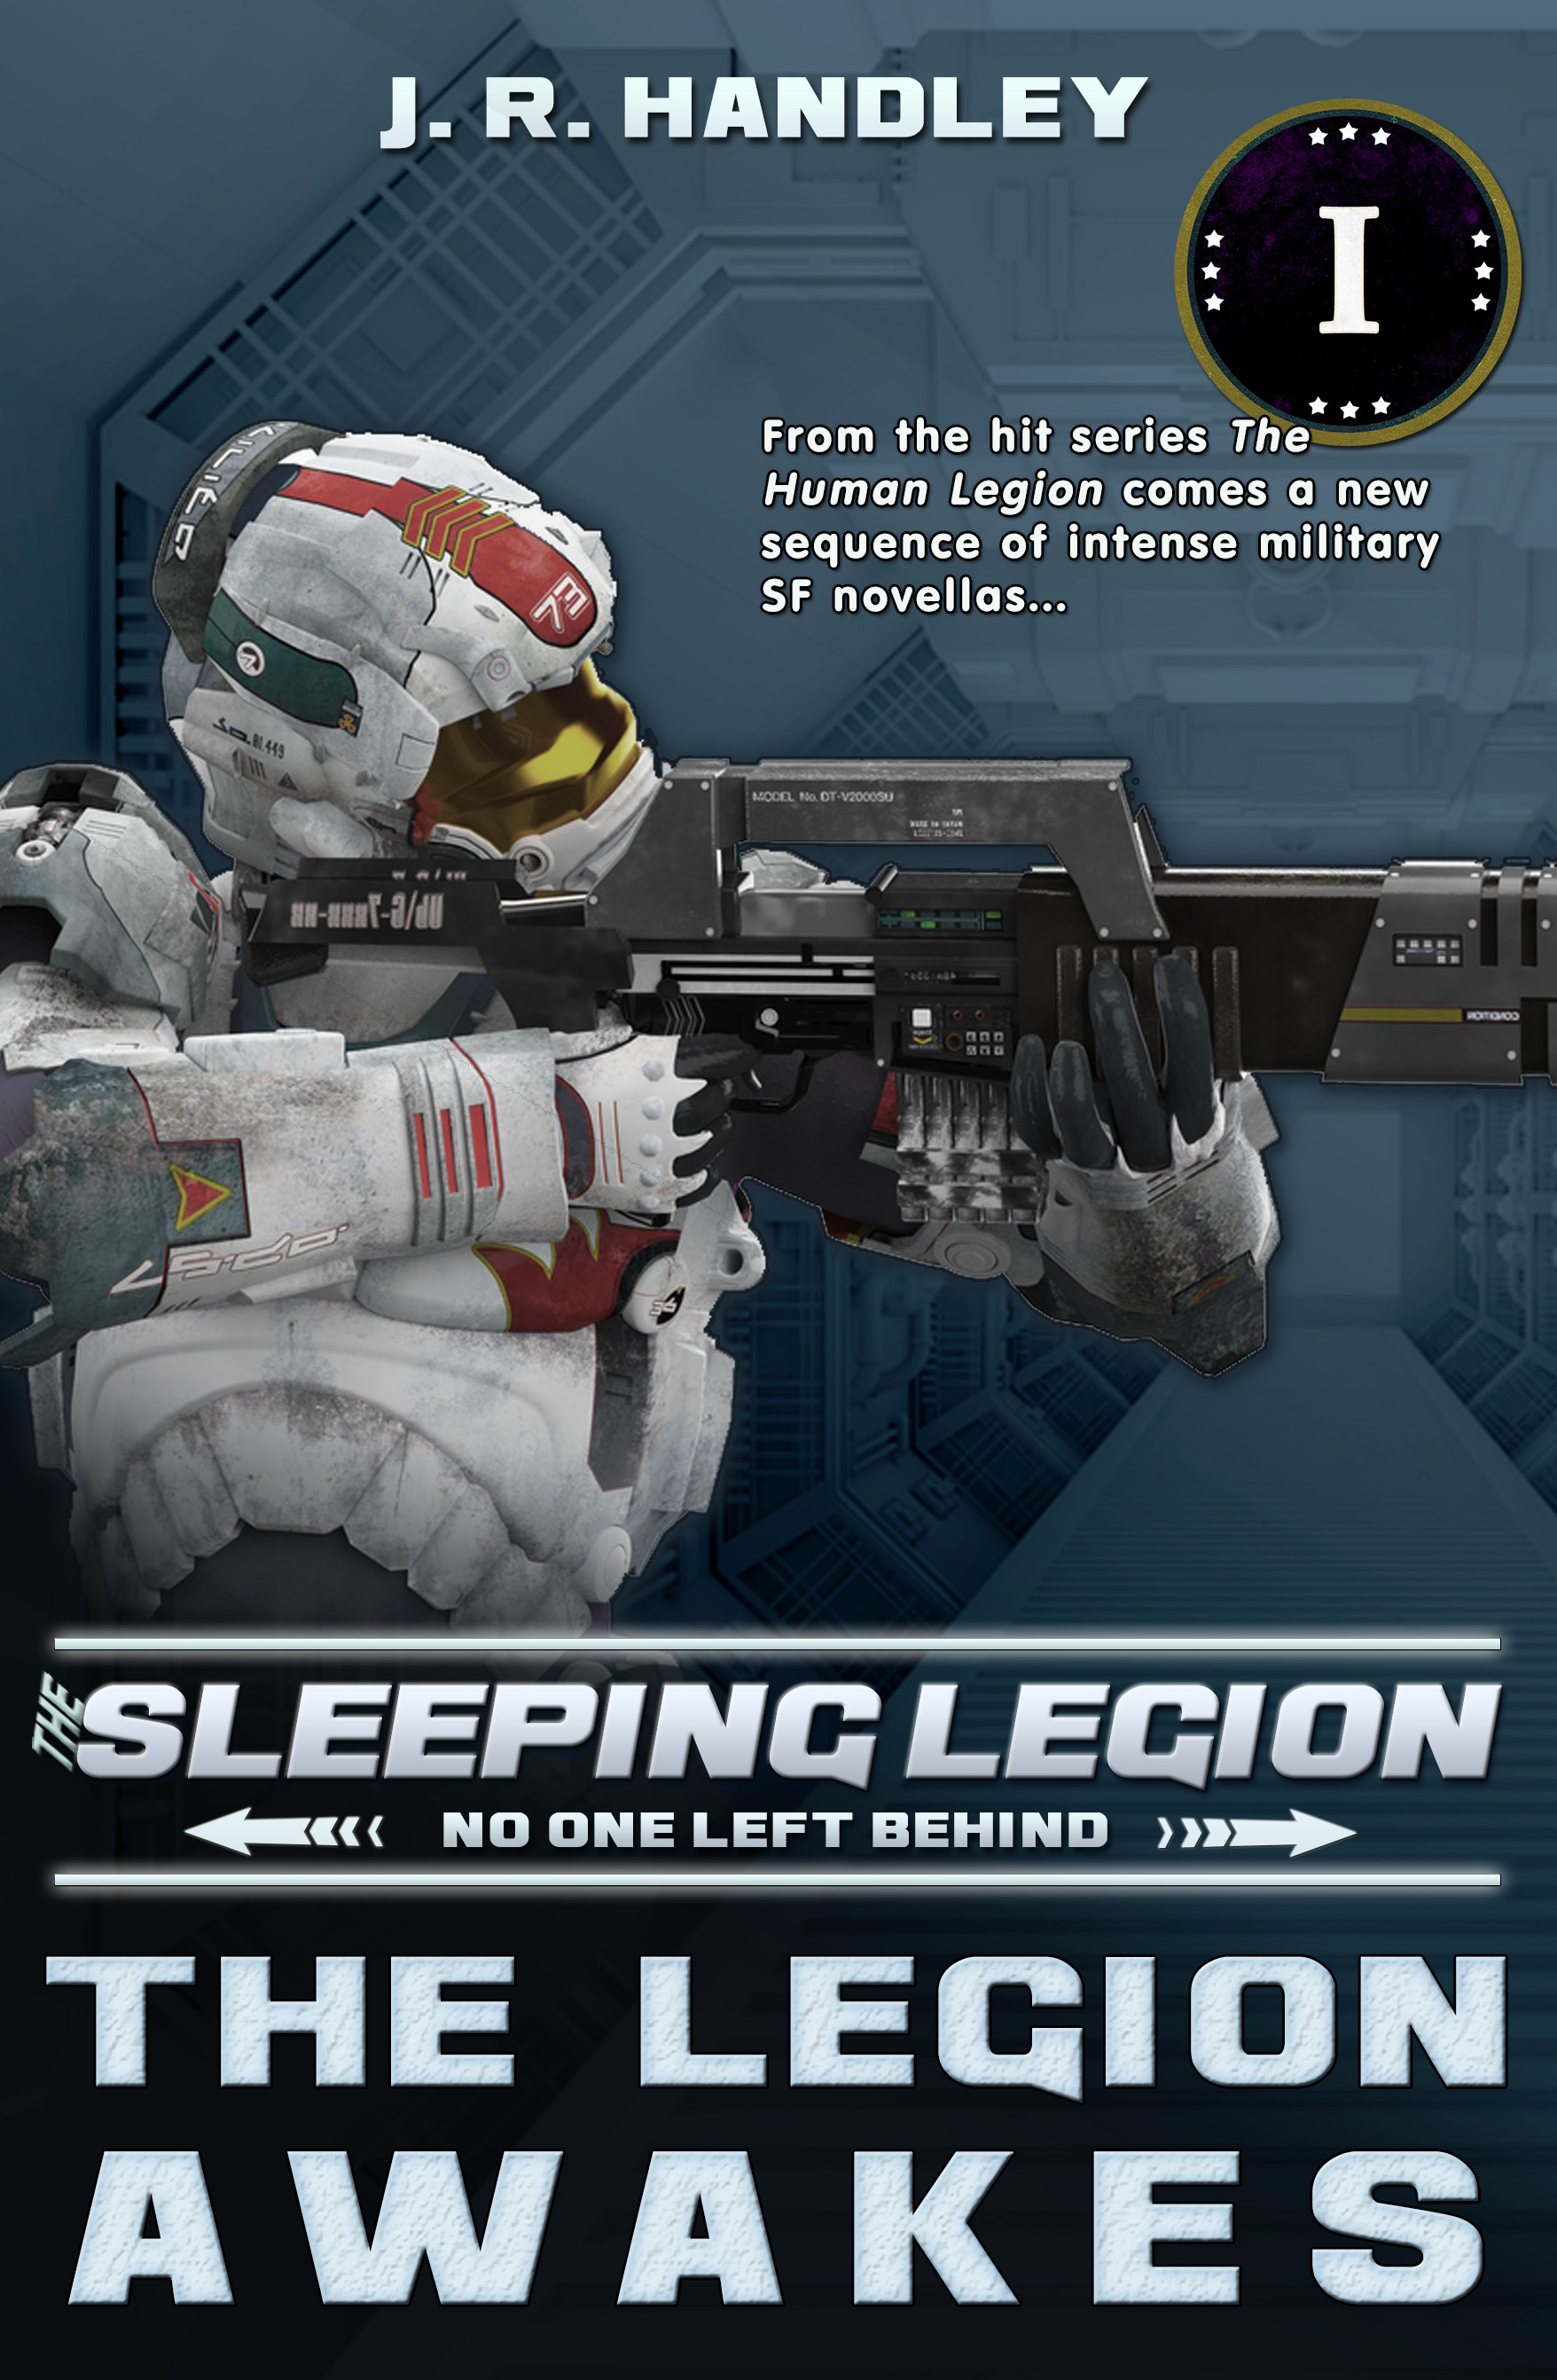 SleepingLegion_Book1_06